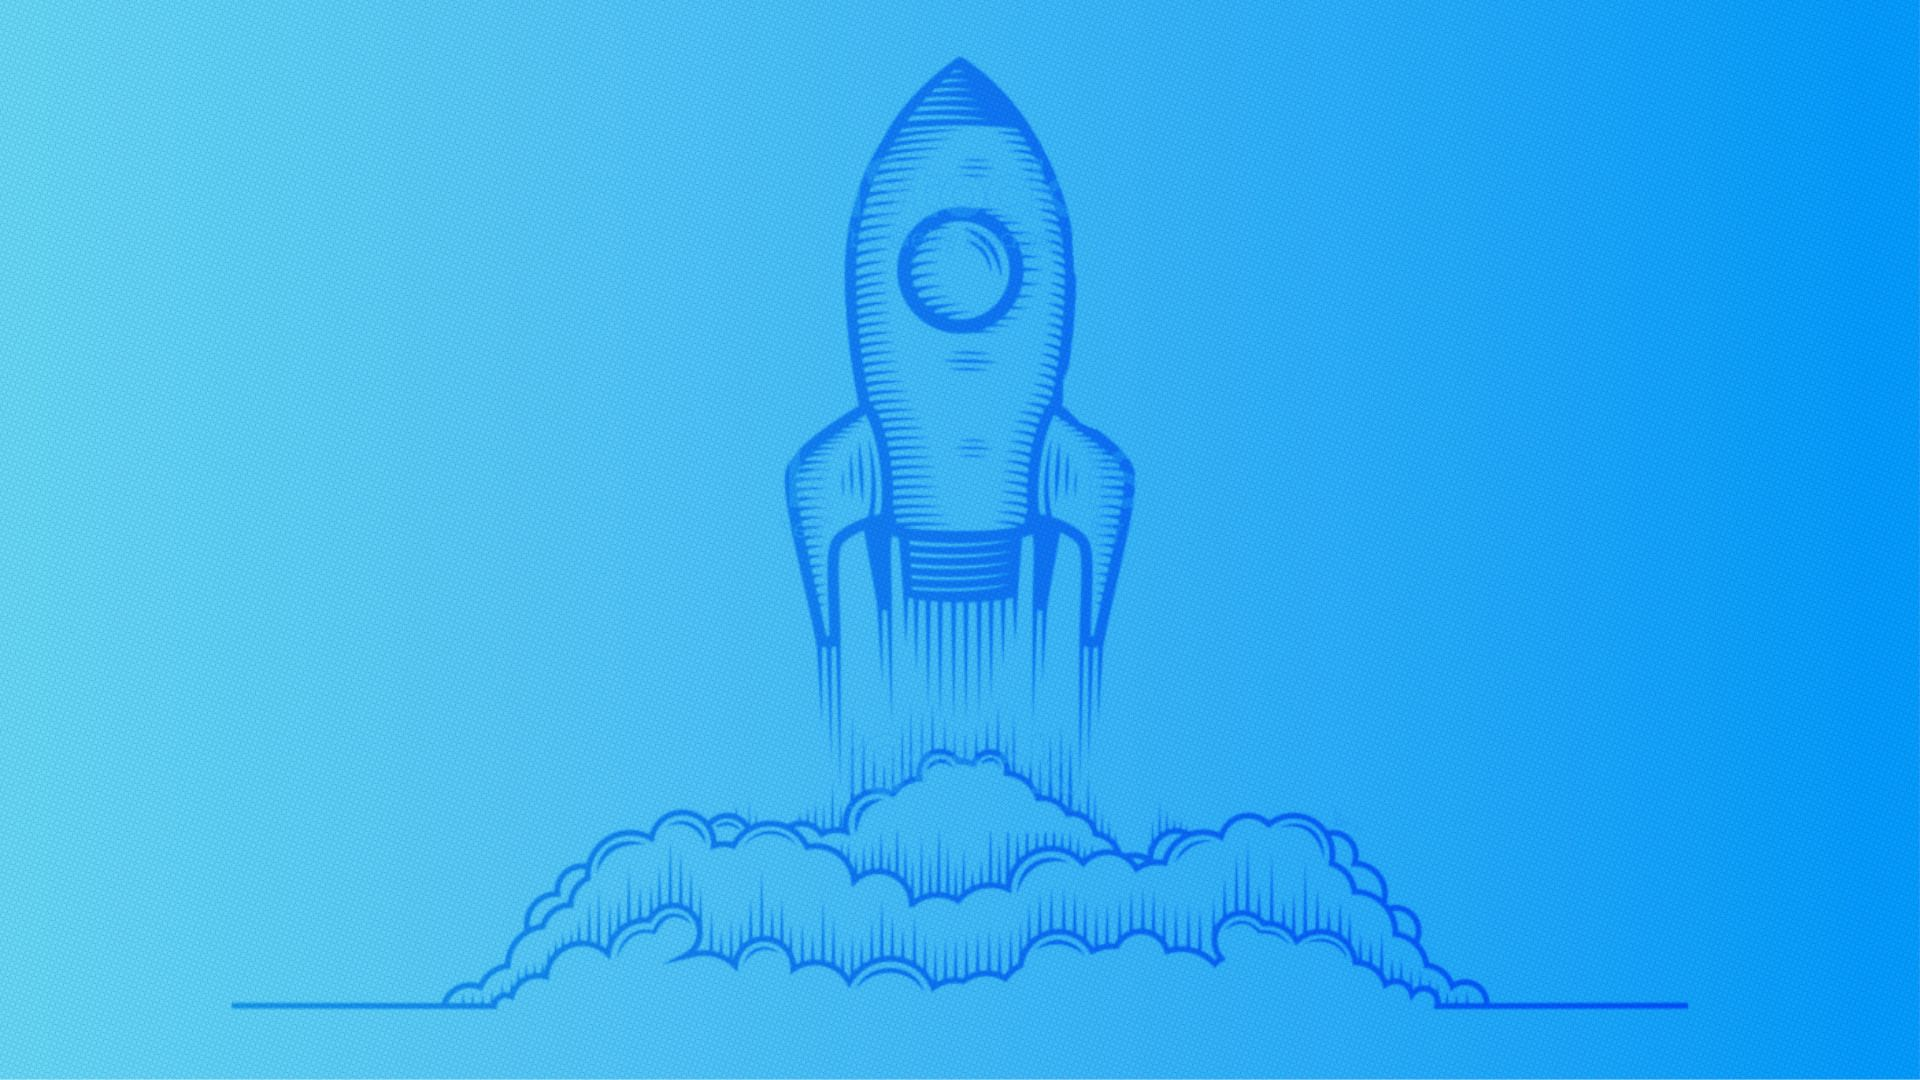 /nasa-space-entrepreneur-releases-growth-hacking-secrets-in-new-book-c93k31jb feature image